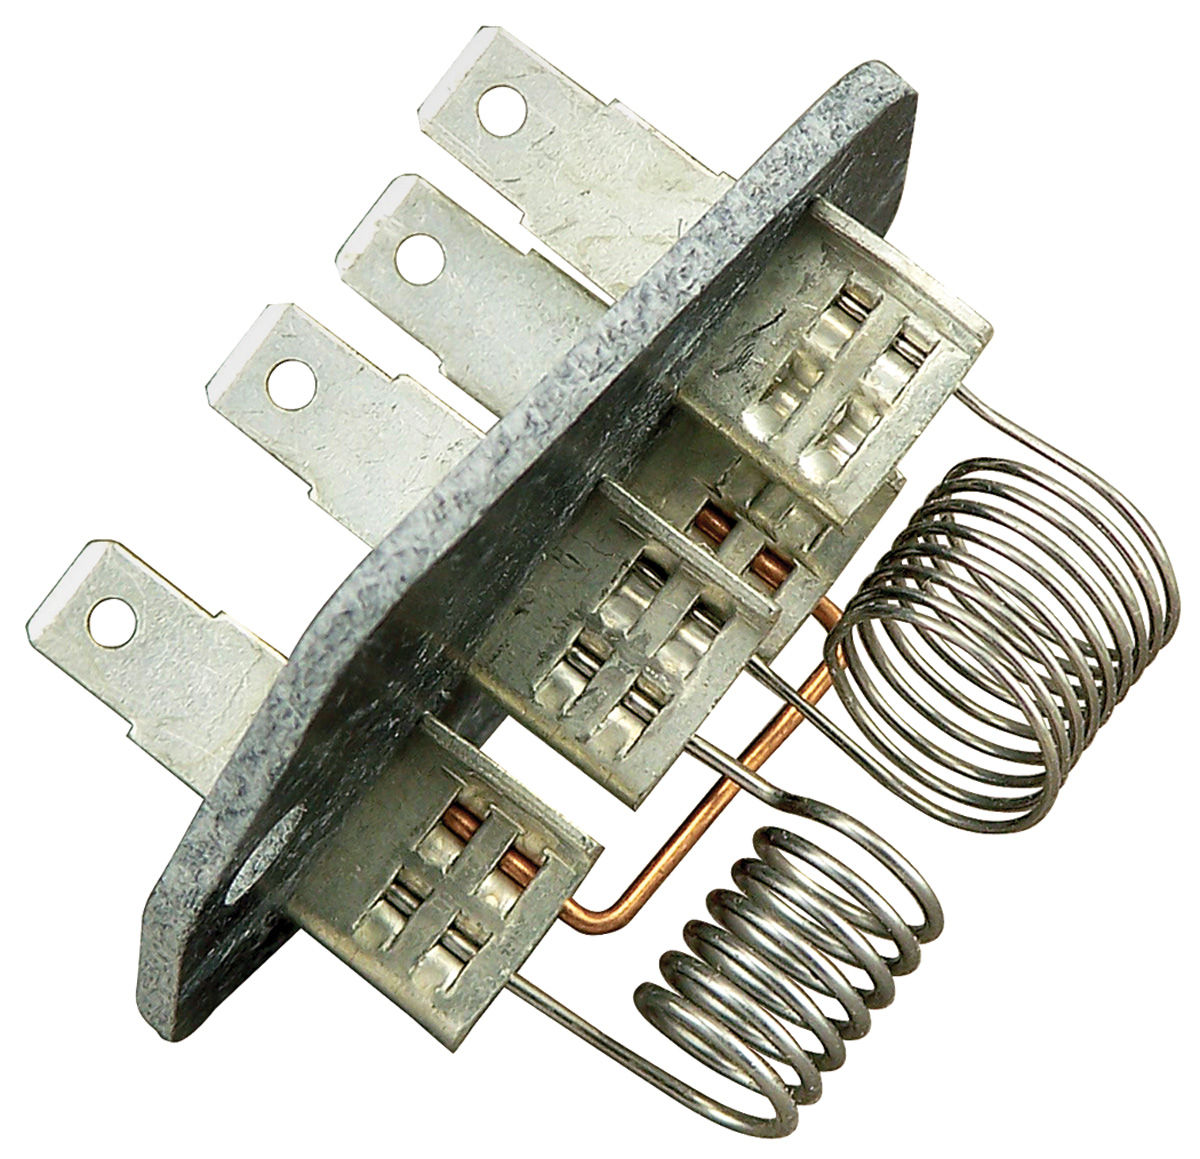 1968 Chevelle Heater Fan Wiring Diagram Data Air Conditioner Old Products 1972 Cutlass 442 Blower Motor Resistor 4 Prong Dash